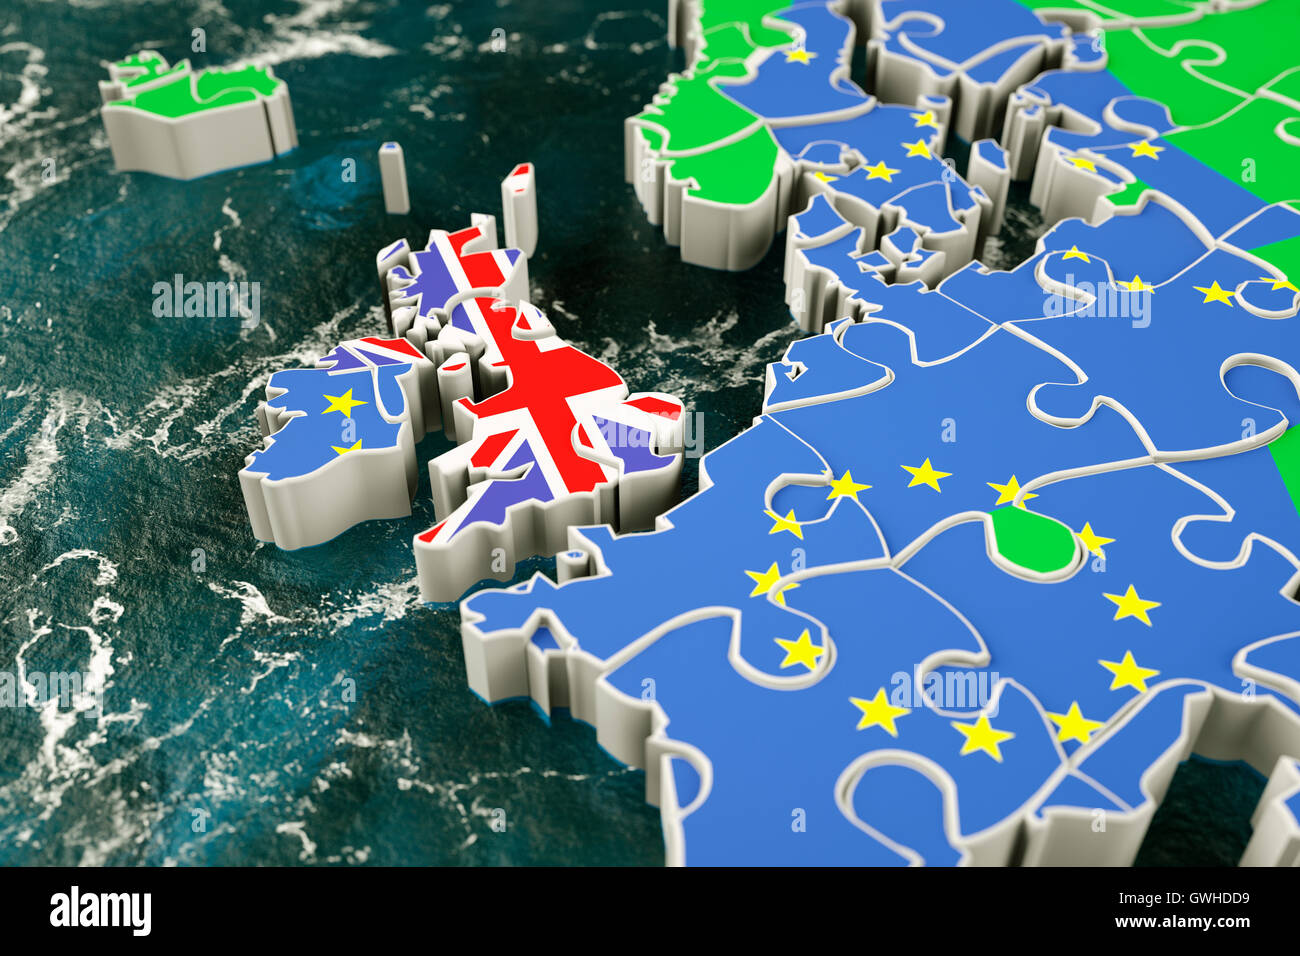 Brexit concept puzzle - representing Brexit, UK exit, trade deal, EU single market, customs union etc. - Stock Image